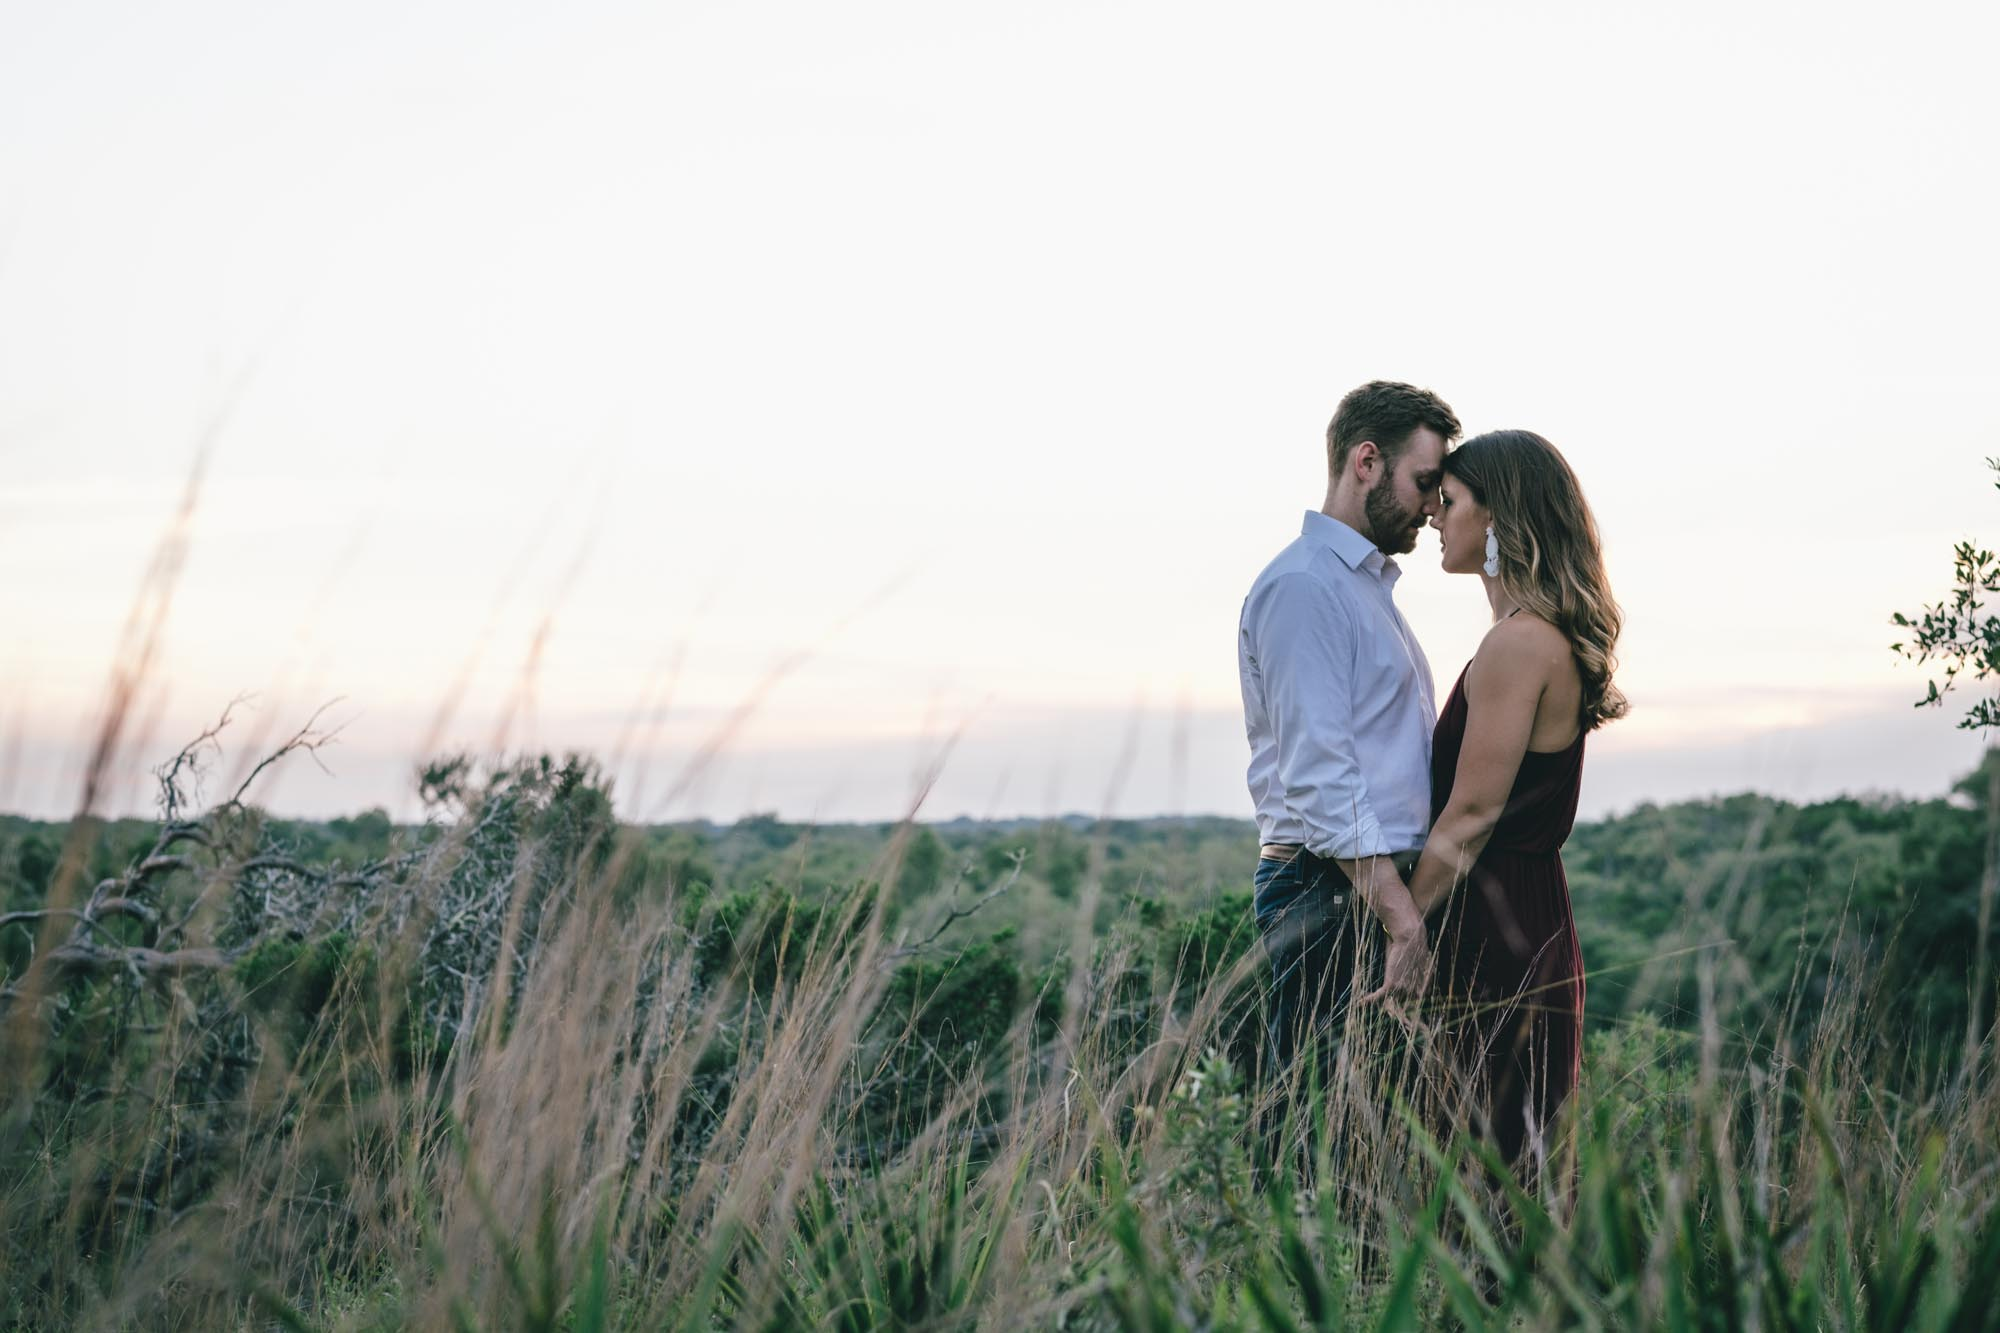 engagement_photography_austin_texas_bailey_toksoz_photography_16.jpg